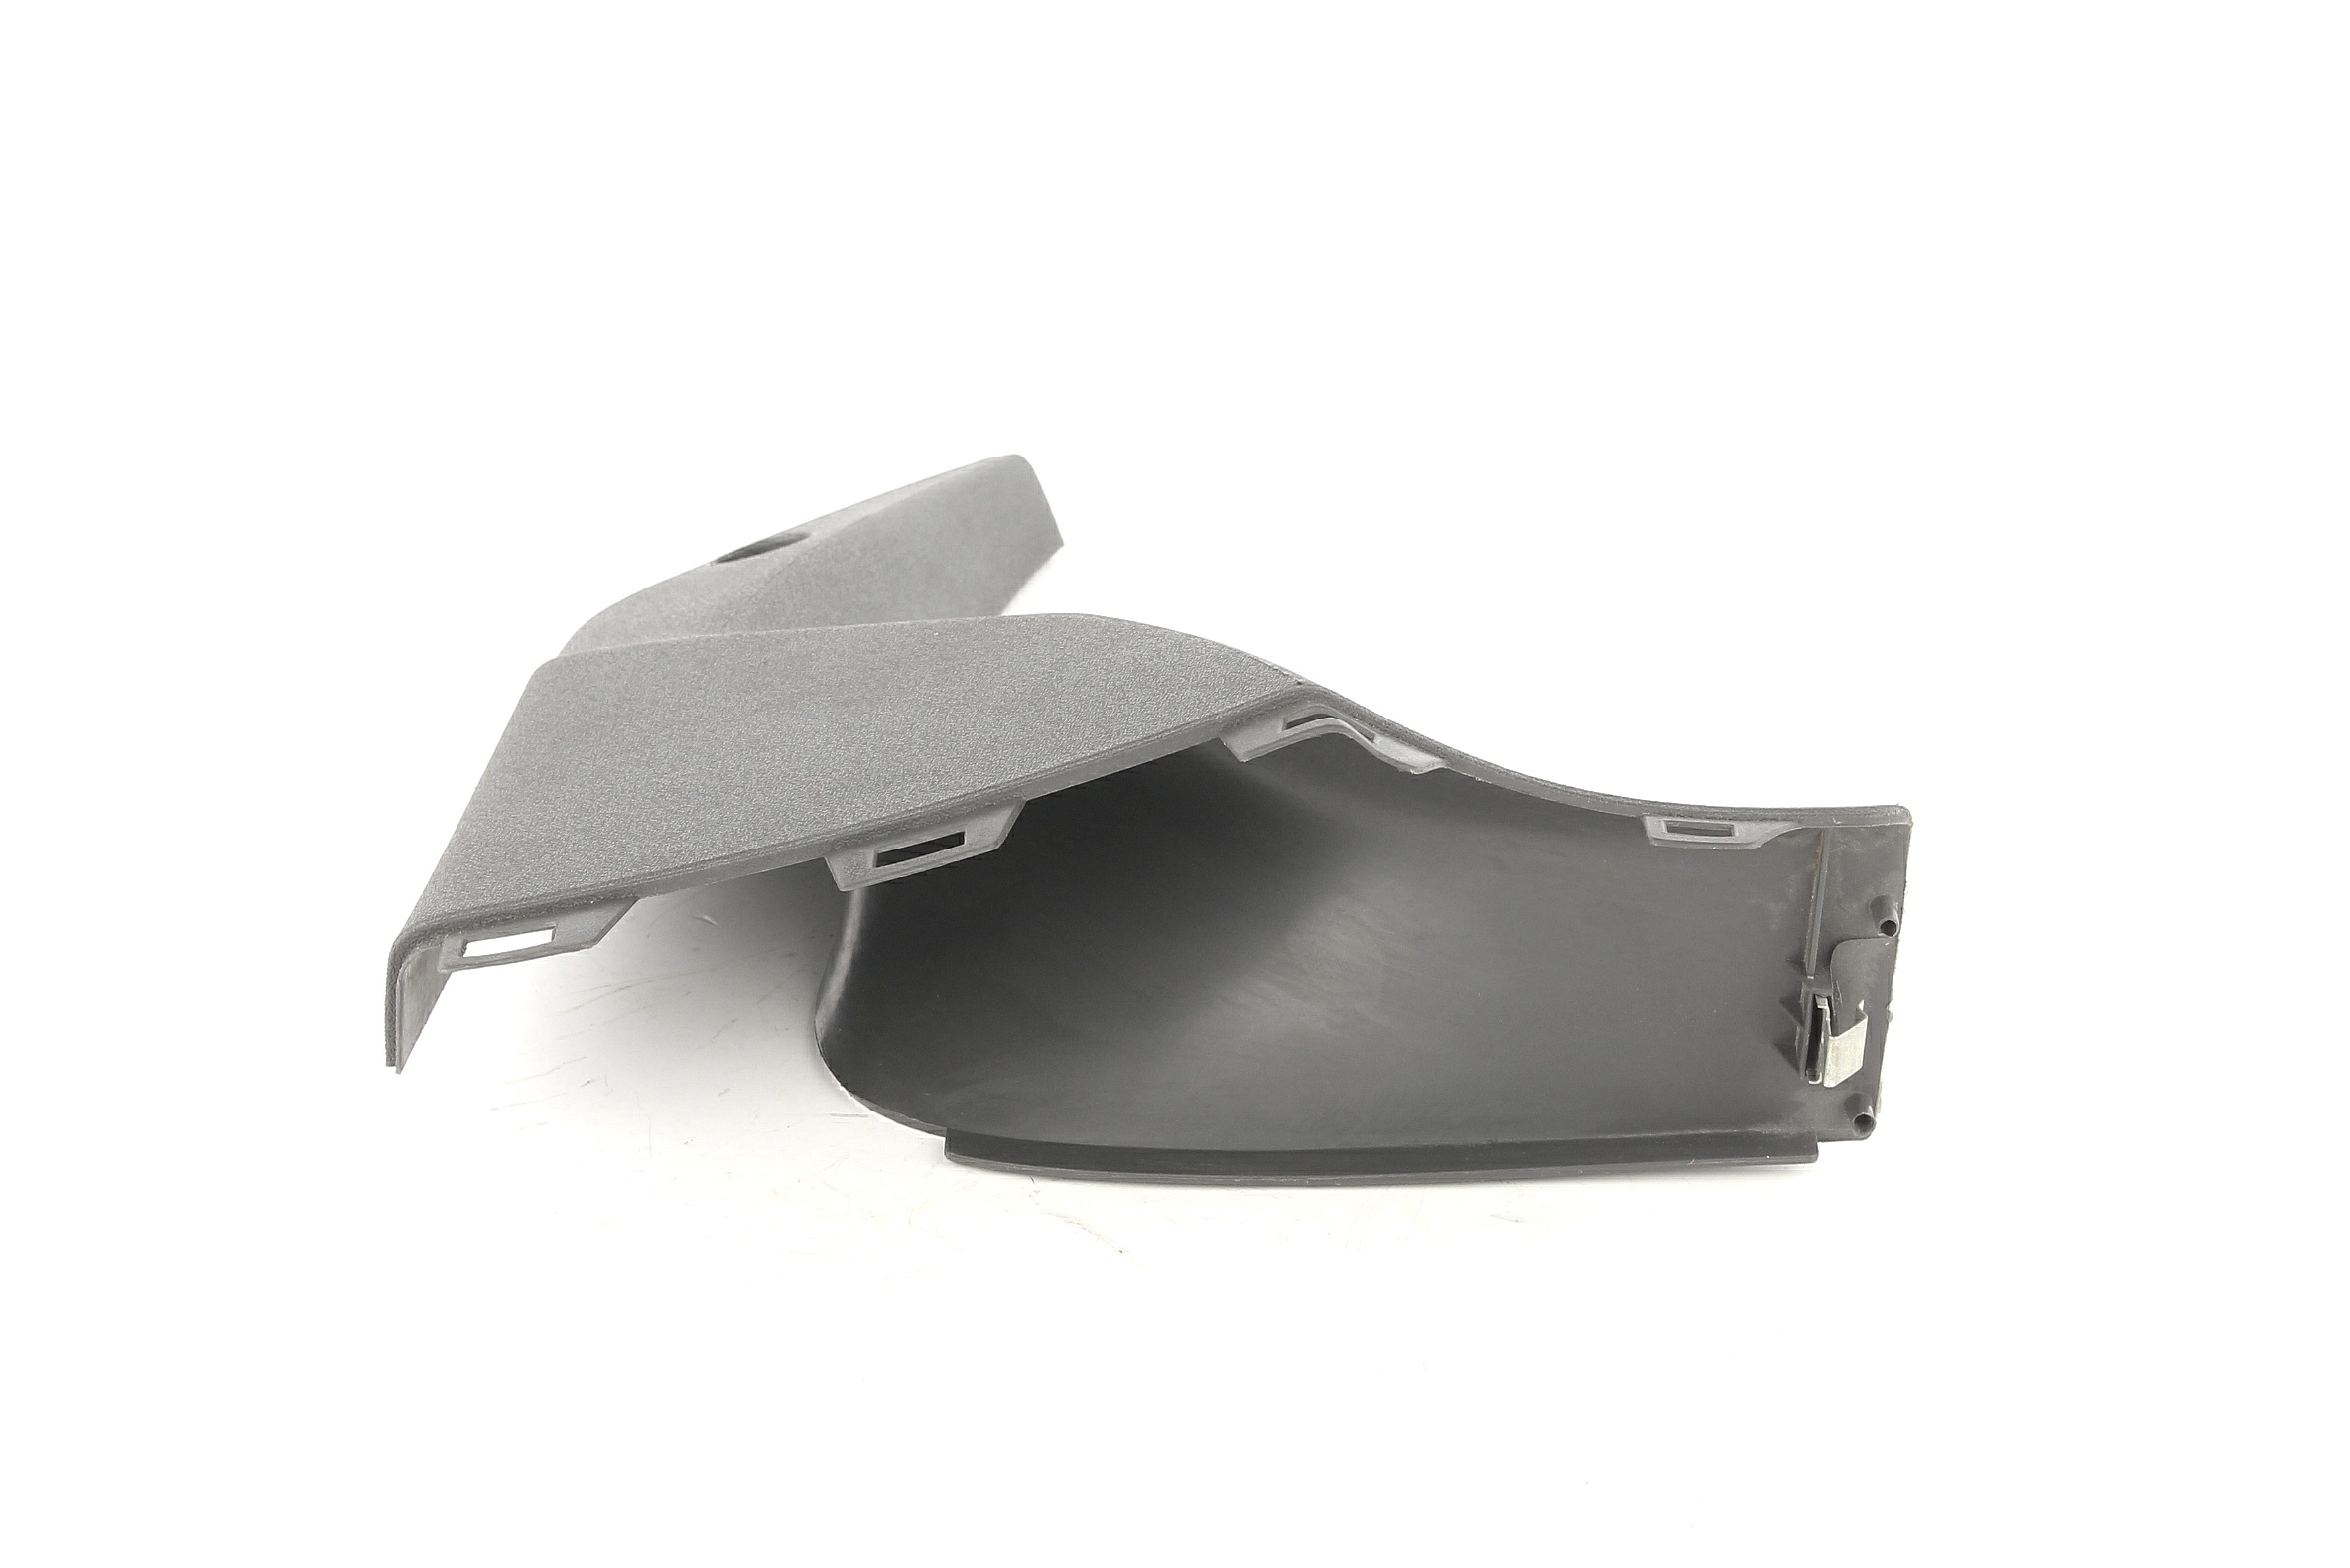 COVER MIRRORS INSIDE P FIAT DUCATO 09- 5801259120